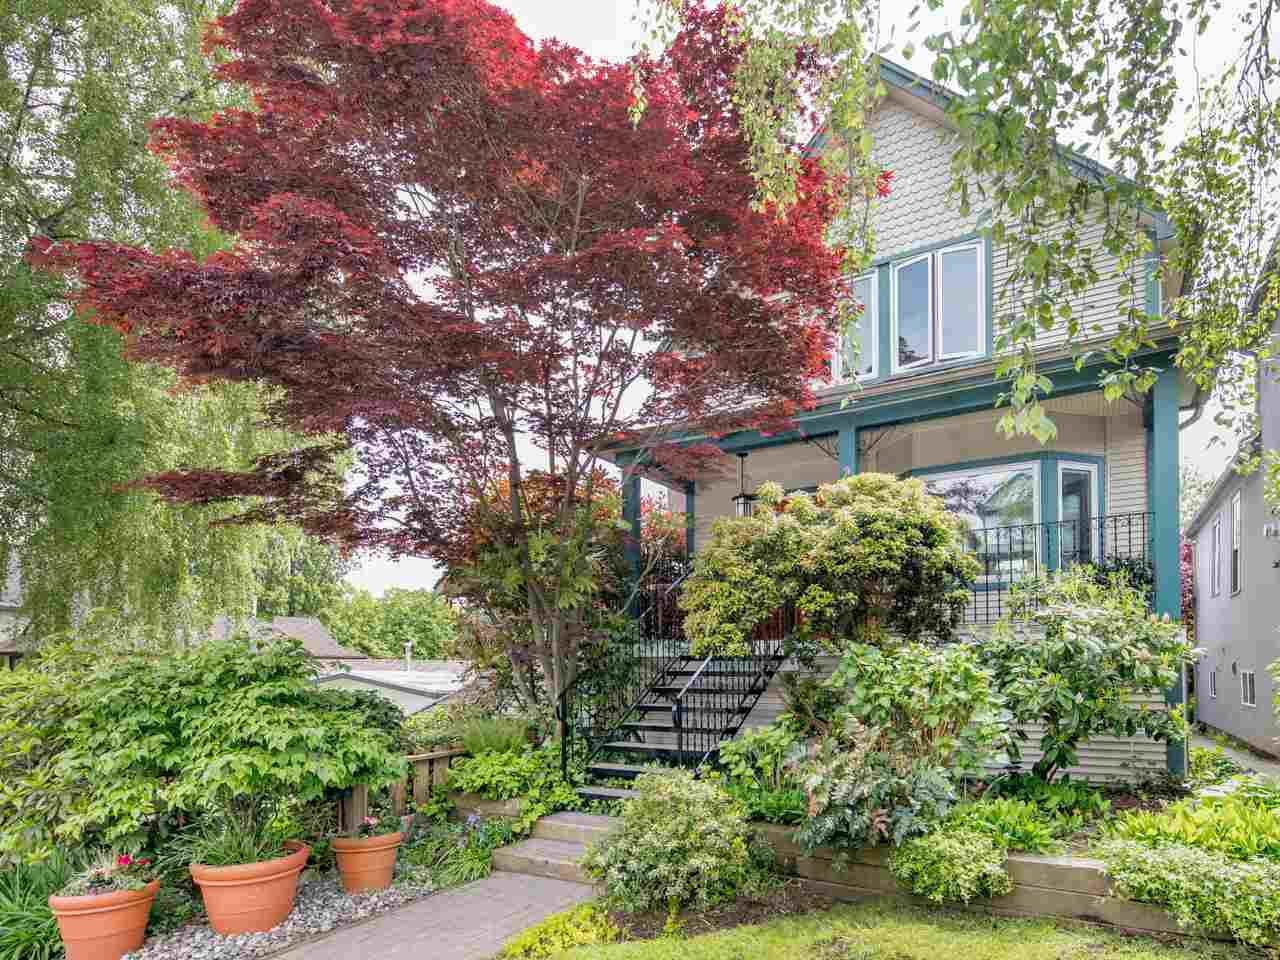 Main Photo: 748 UNION Street in Vancouver: Mount Pleasant VE House for sale (Vancouver East)  : MLS® # R2168904